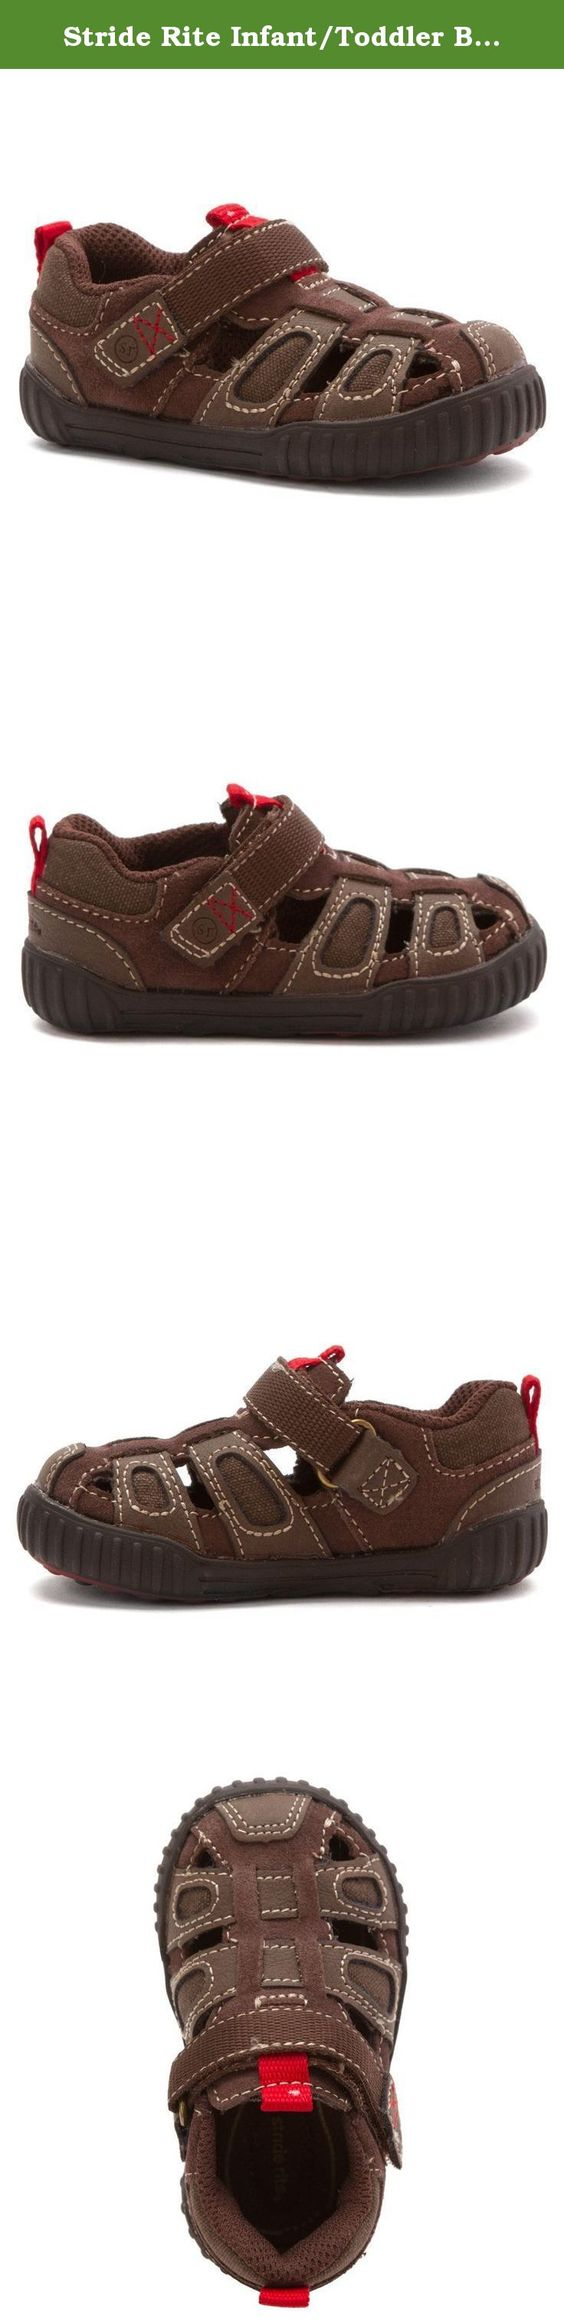 Stride Rite Infant/Toddler Boys' SRT Churchill - Toddler,Brown Leather,US 5.5 W. This fun sneaker is ready for the playground, with rounded edges to decrease stumbles and falls, memory foam for enhanced comfort, and mesh lining with antimicrobial treatment. Deep flex grooves enables natural movement. Alternative closure with H&L for easy on/off and adjustability.